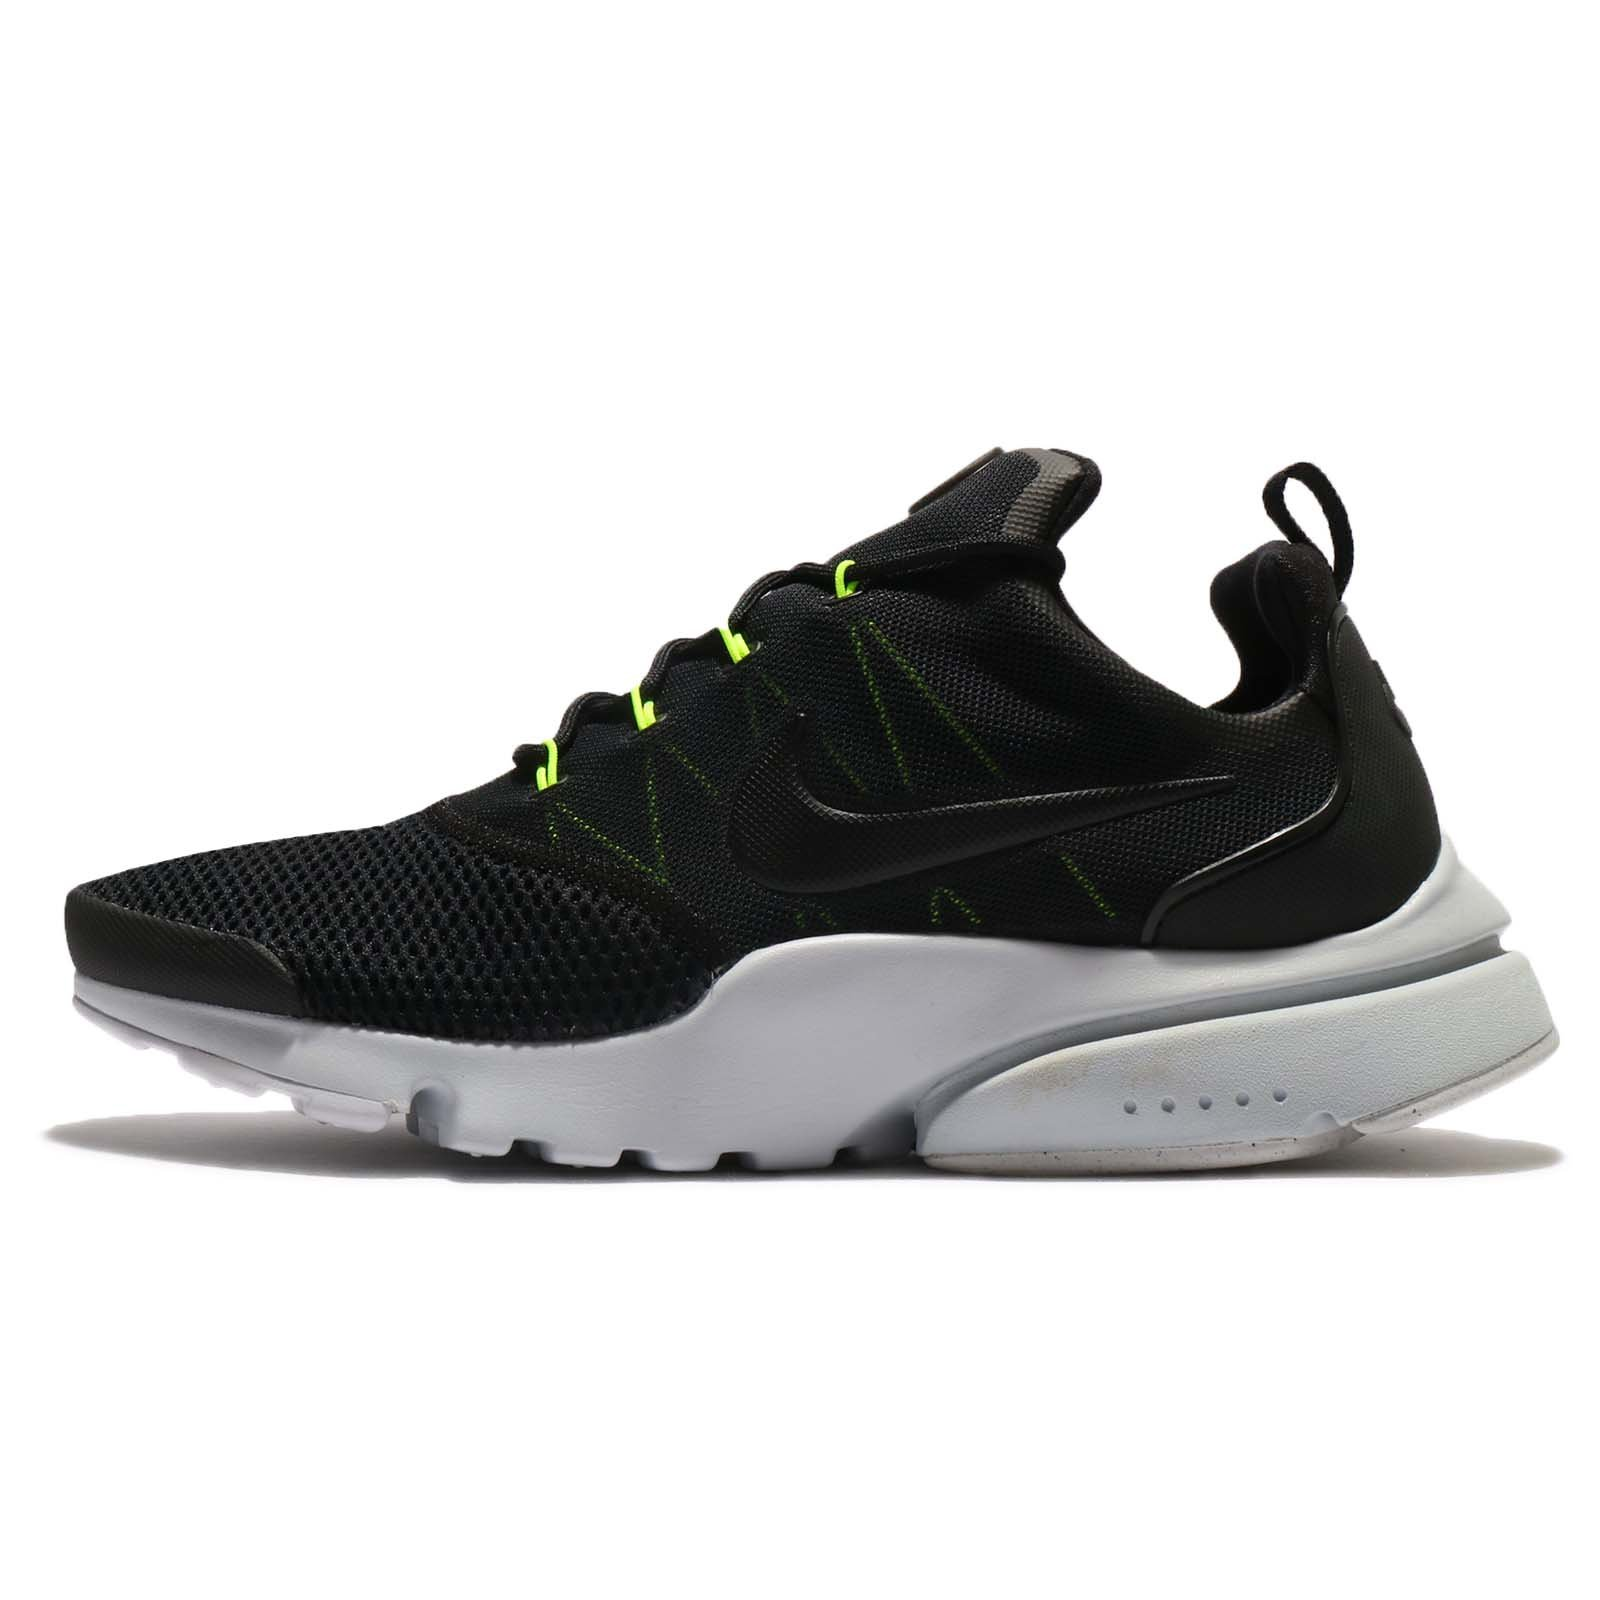 2efb9814d59 Galleon - NIKE Mens Presto Fly Running Shoes (11.5 D(M) US